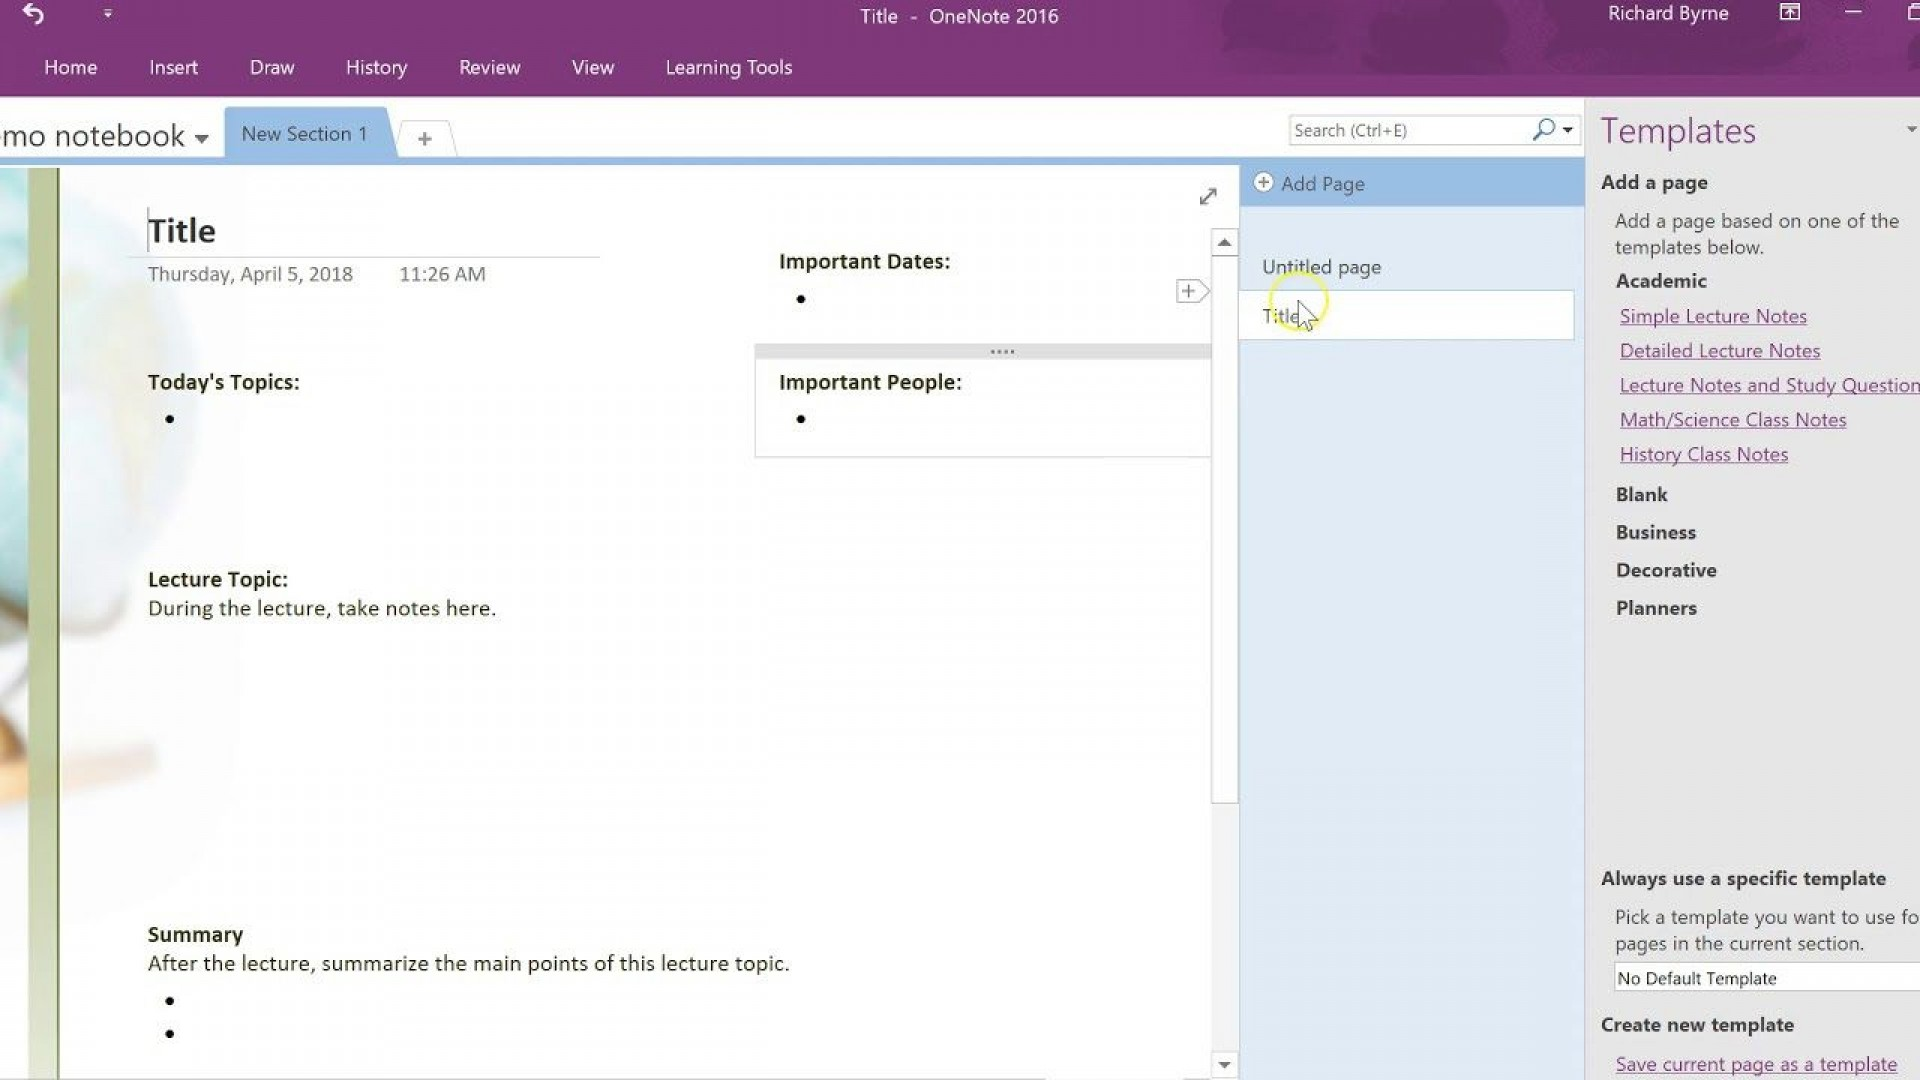 002 Breathtaking Onenote Project Management Notebook Template Image 1920